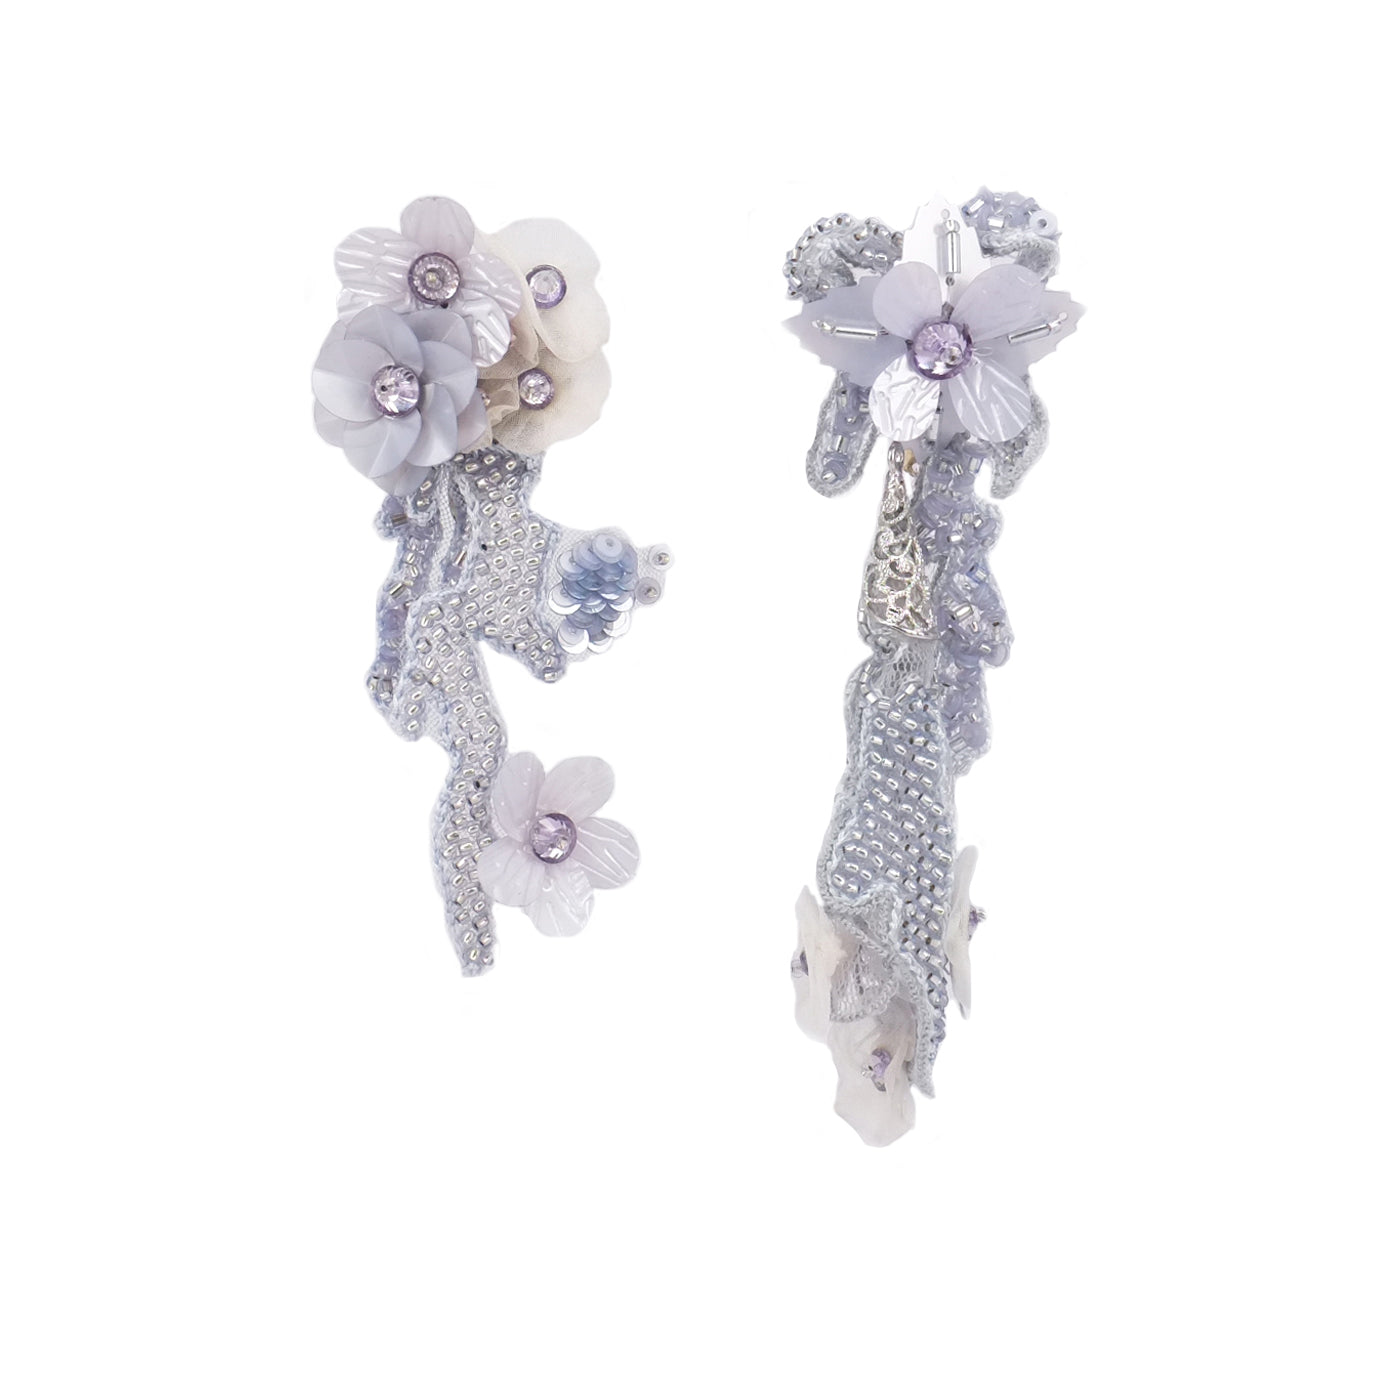 Cosmo Garden Earrings (B3 Limited) - ADA PAT DESIGN